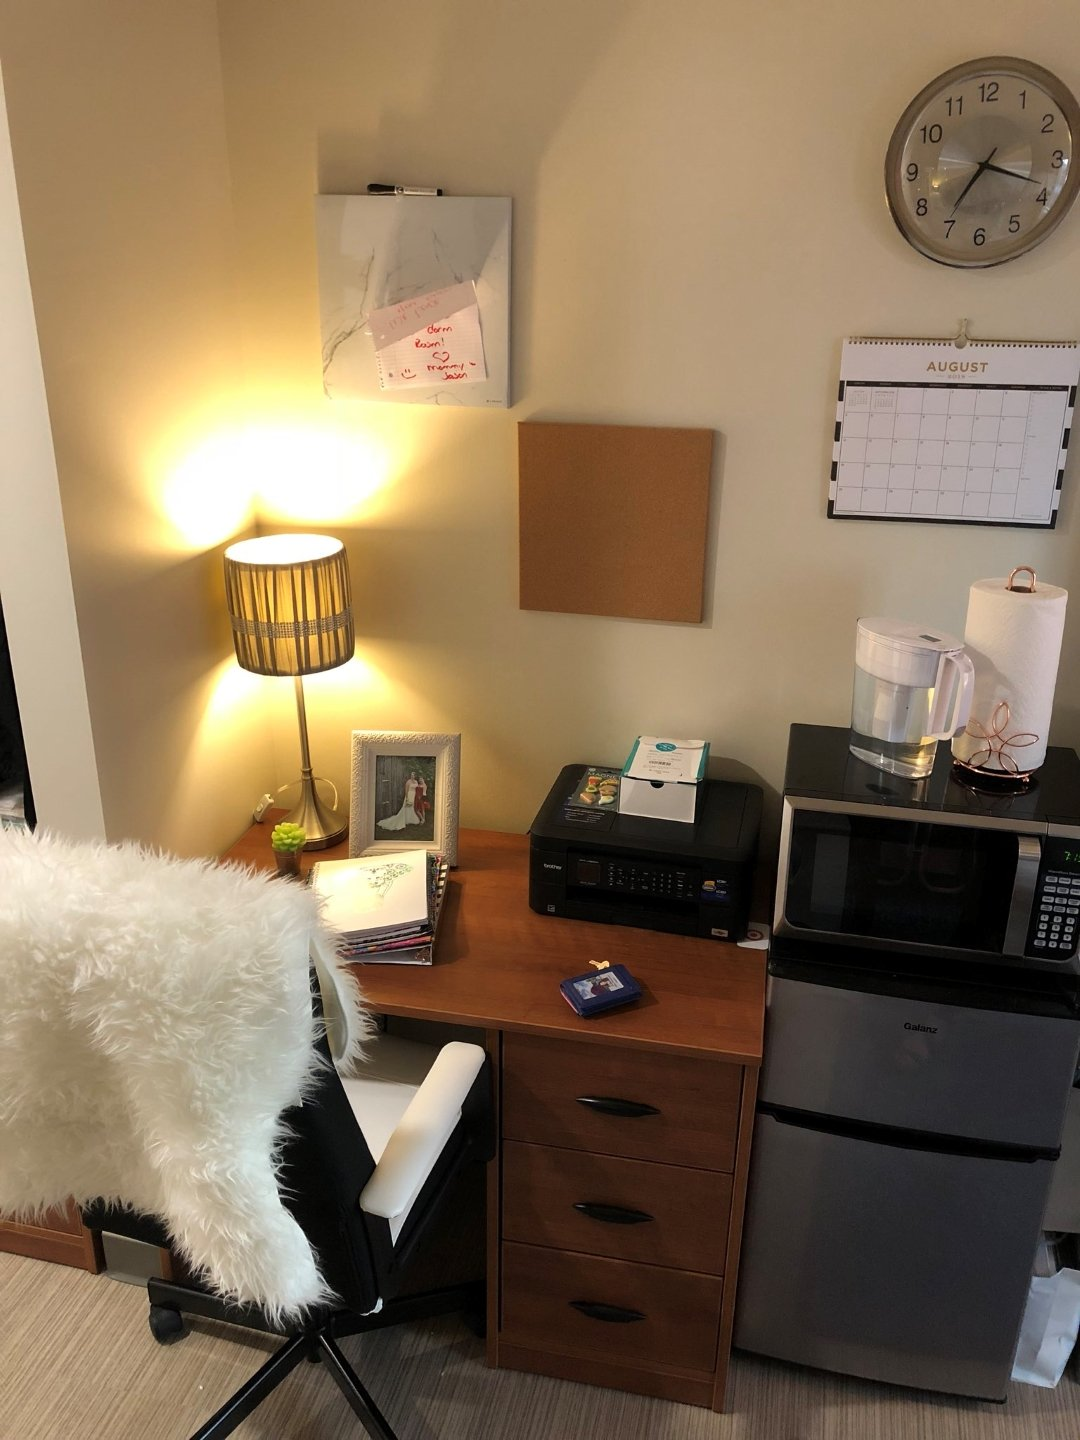 college dorm desk, mini fridge, and microwave. chair with faux fur covering